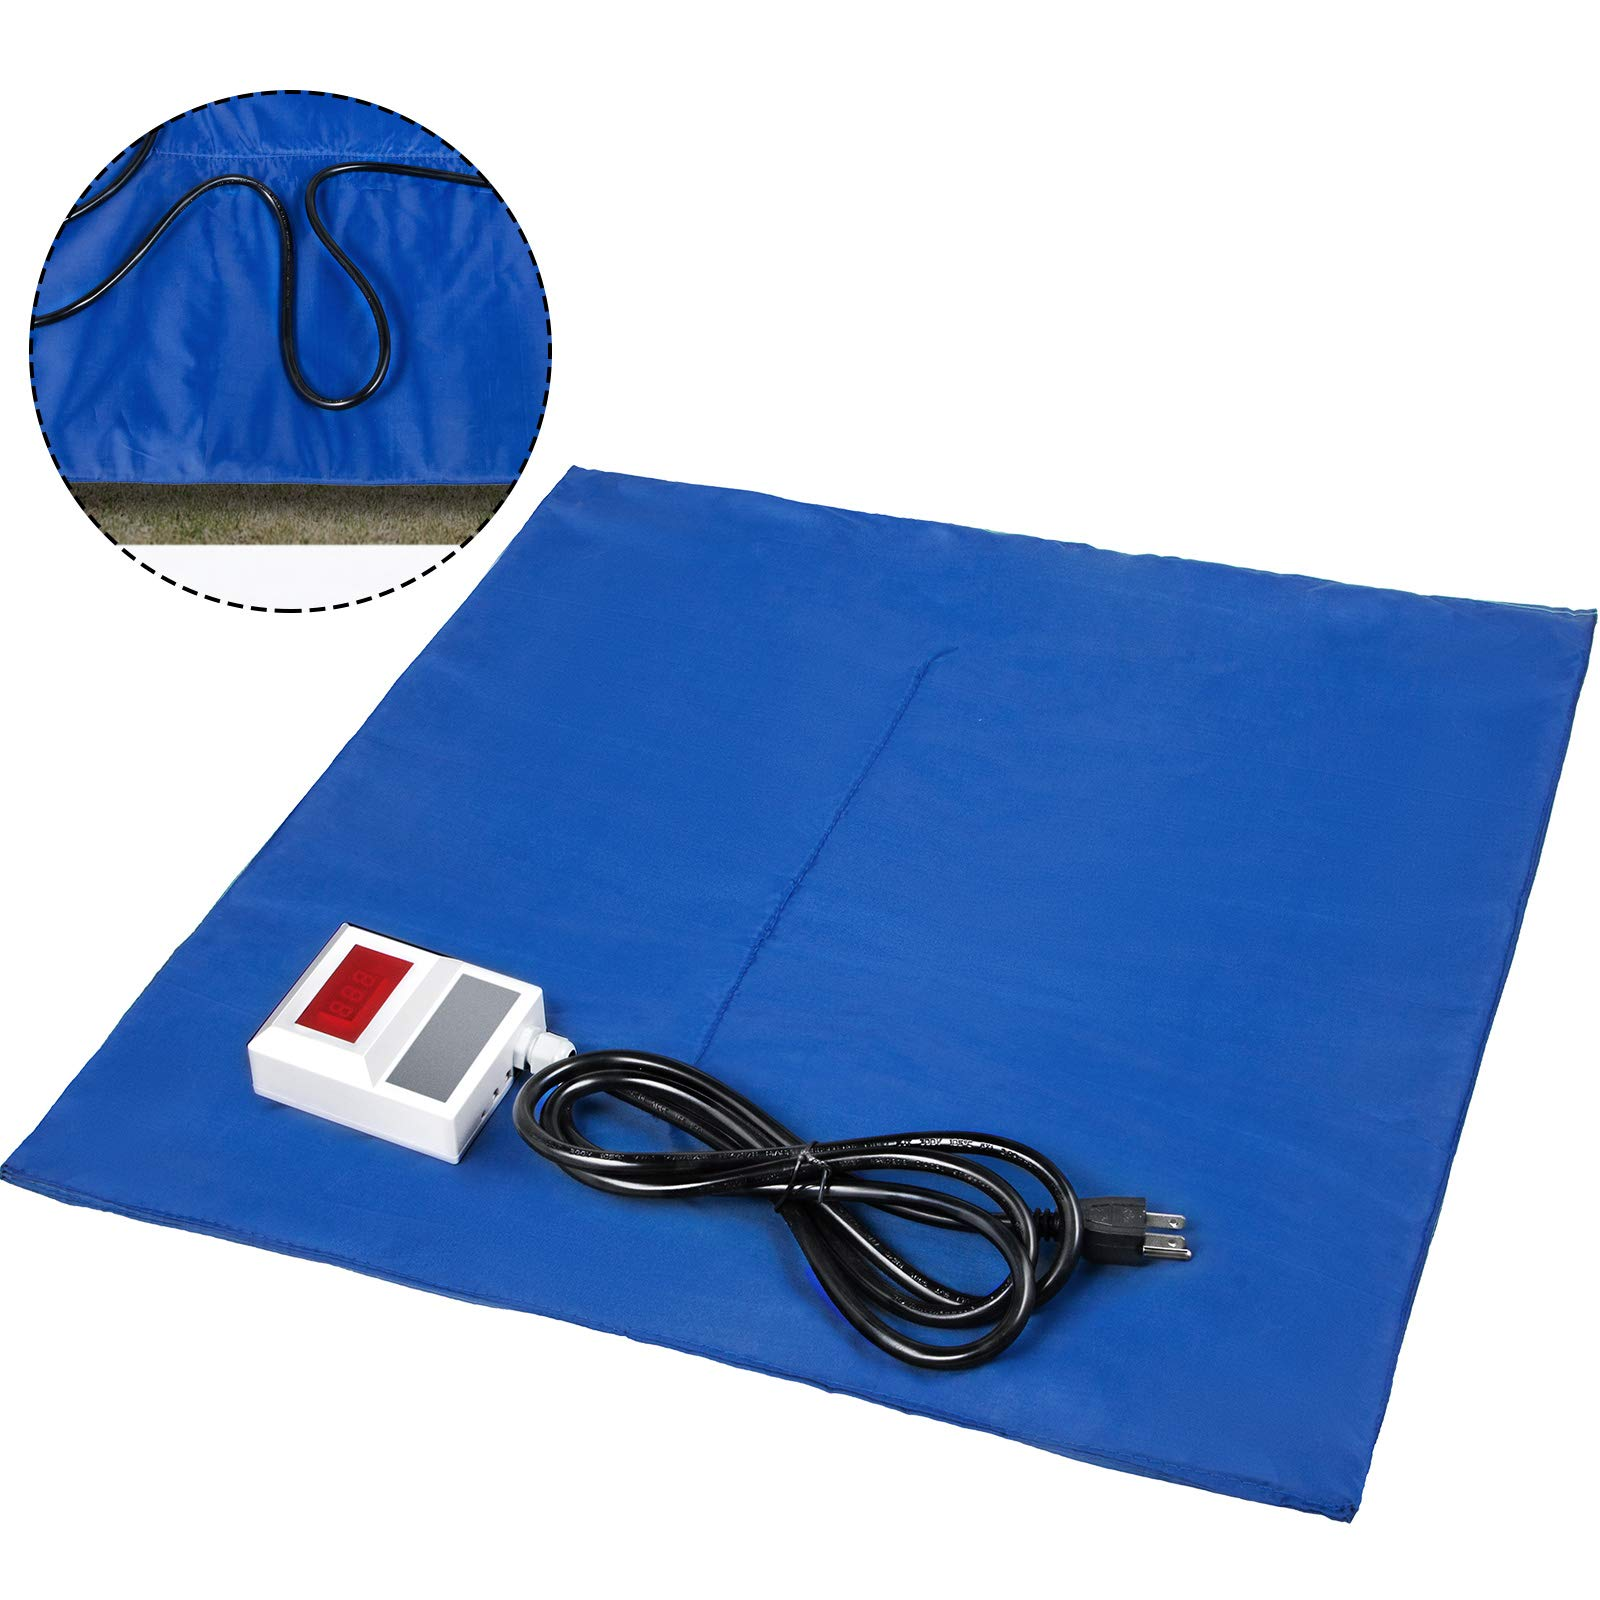 Bestauto Concrete Blanket Electric Concrete Curing Blanket Rapid Thaw Ground Thawing Blanket, Power Blanket Density Blanket Insulated Concrete Heater, 2' x 2' Finished Dimensions for Concrete Ground